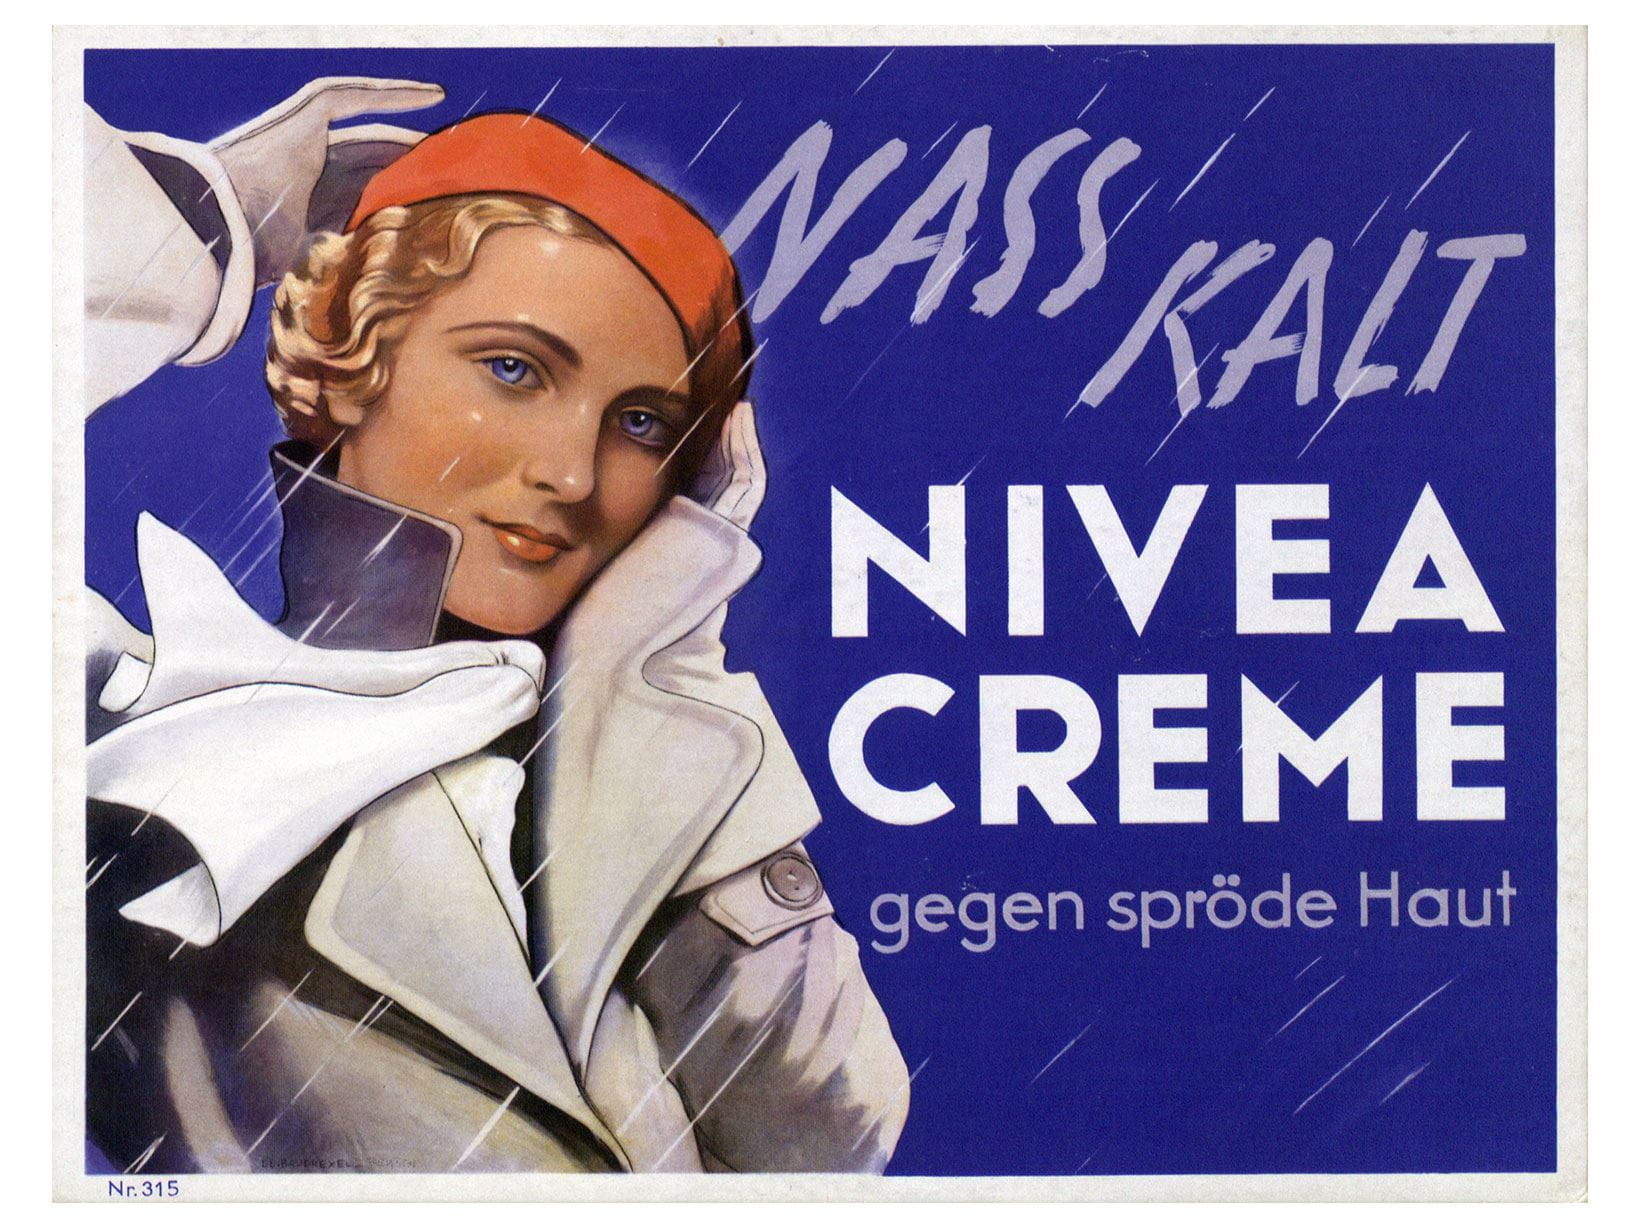 NIVEA advertising poster from 1935: NIVEA Creme for rough skin